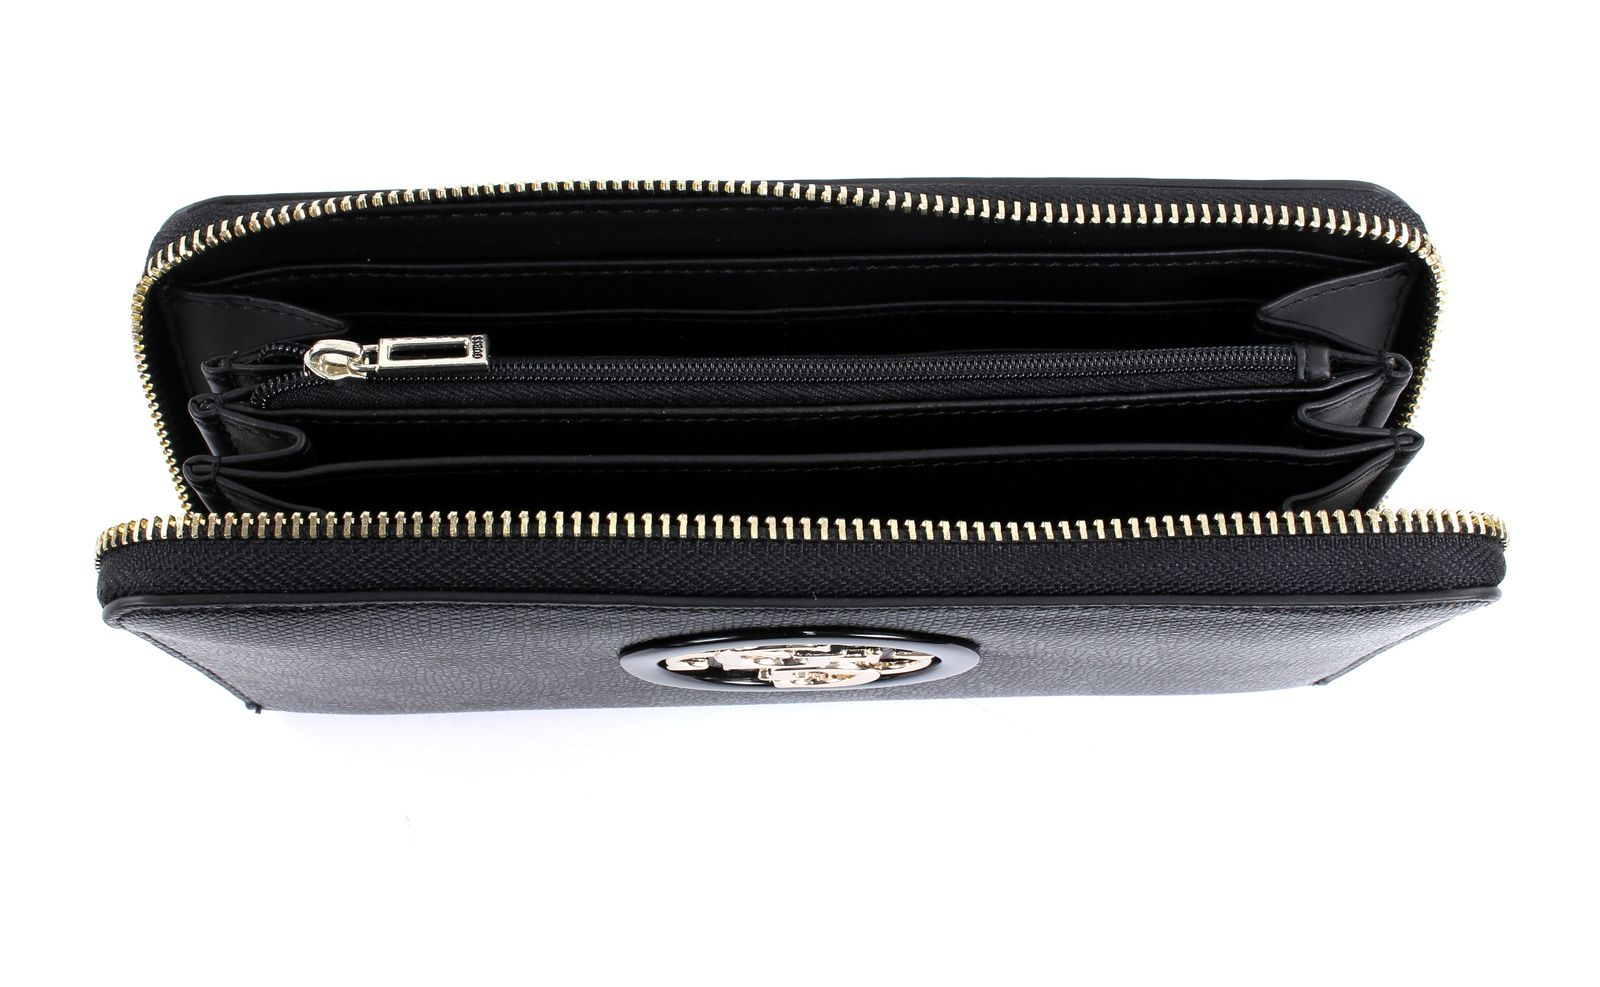 GUESS Open Road SLG Large Zip Around Black